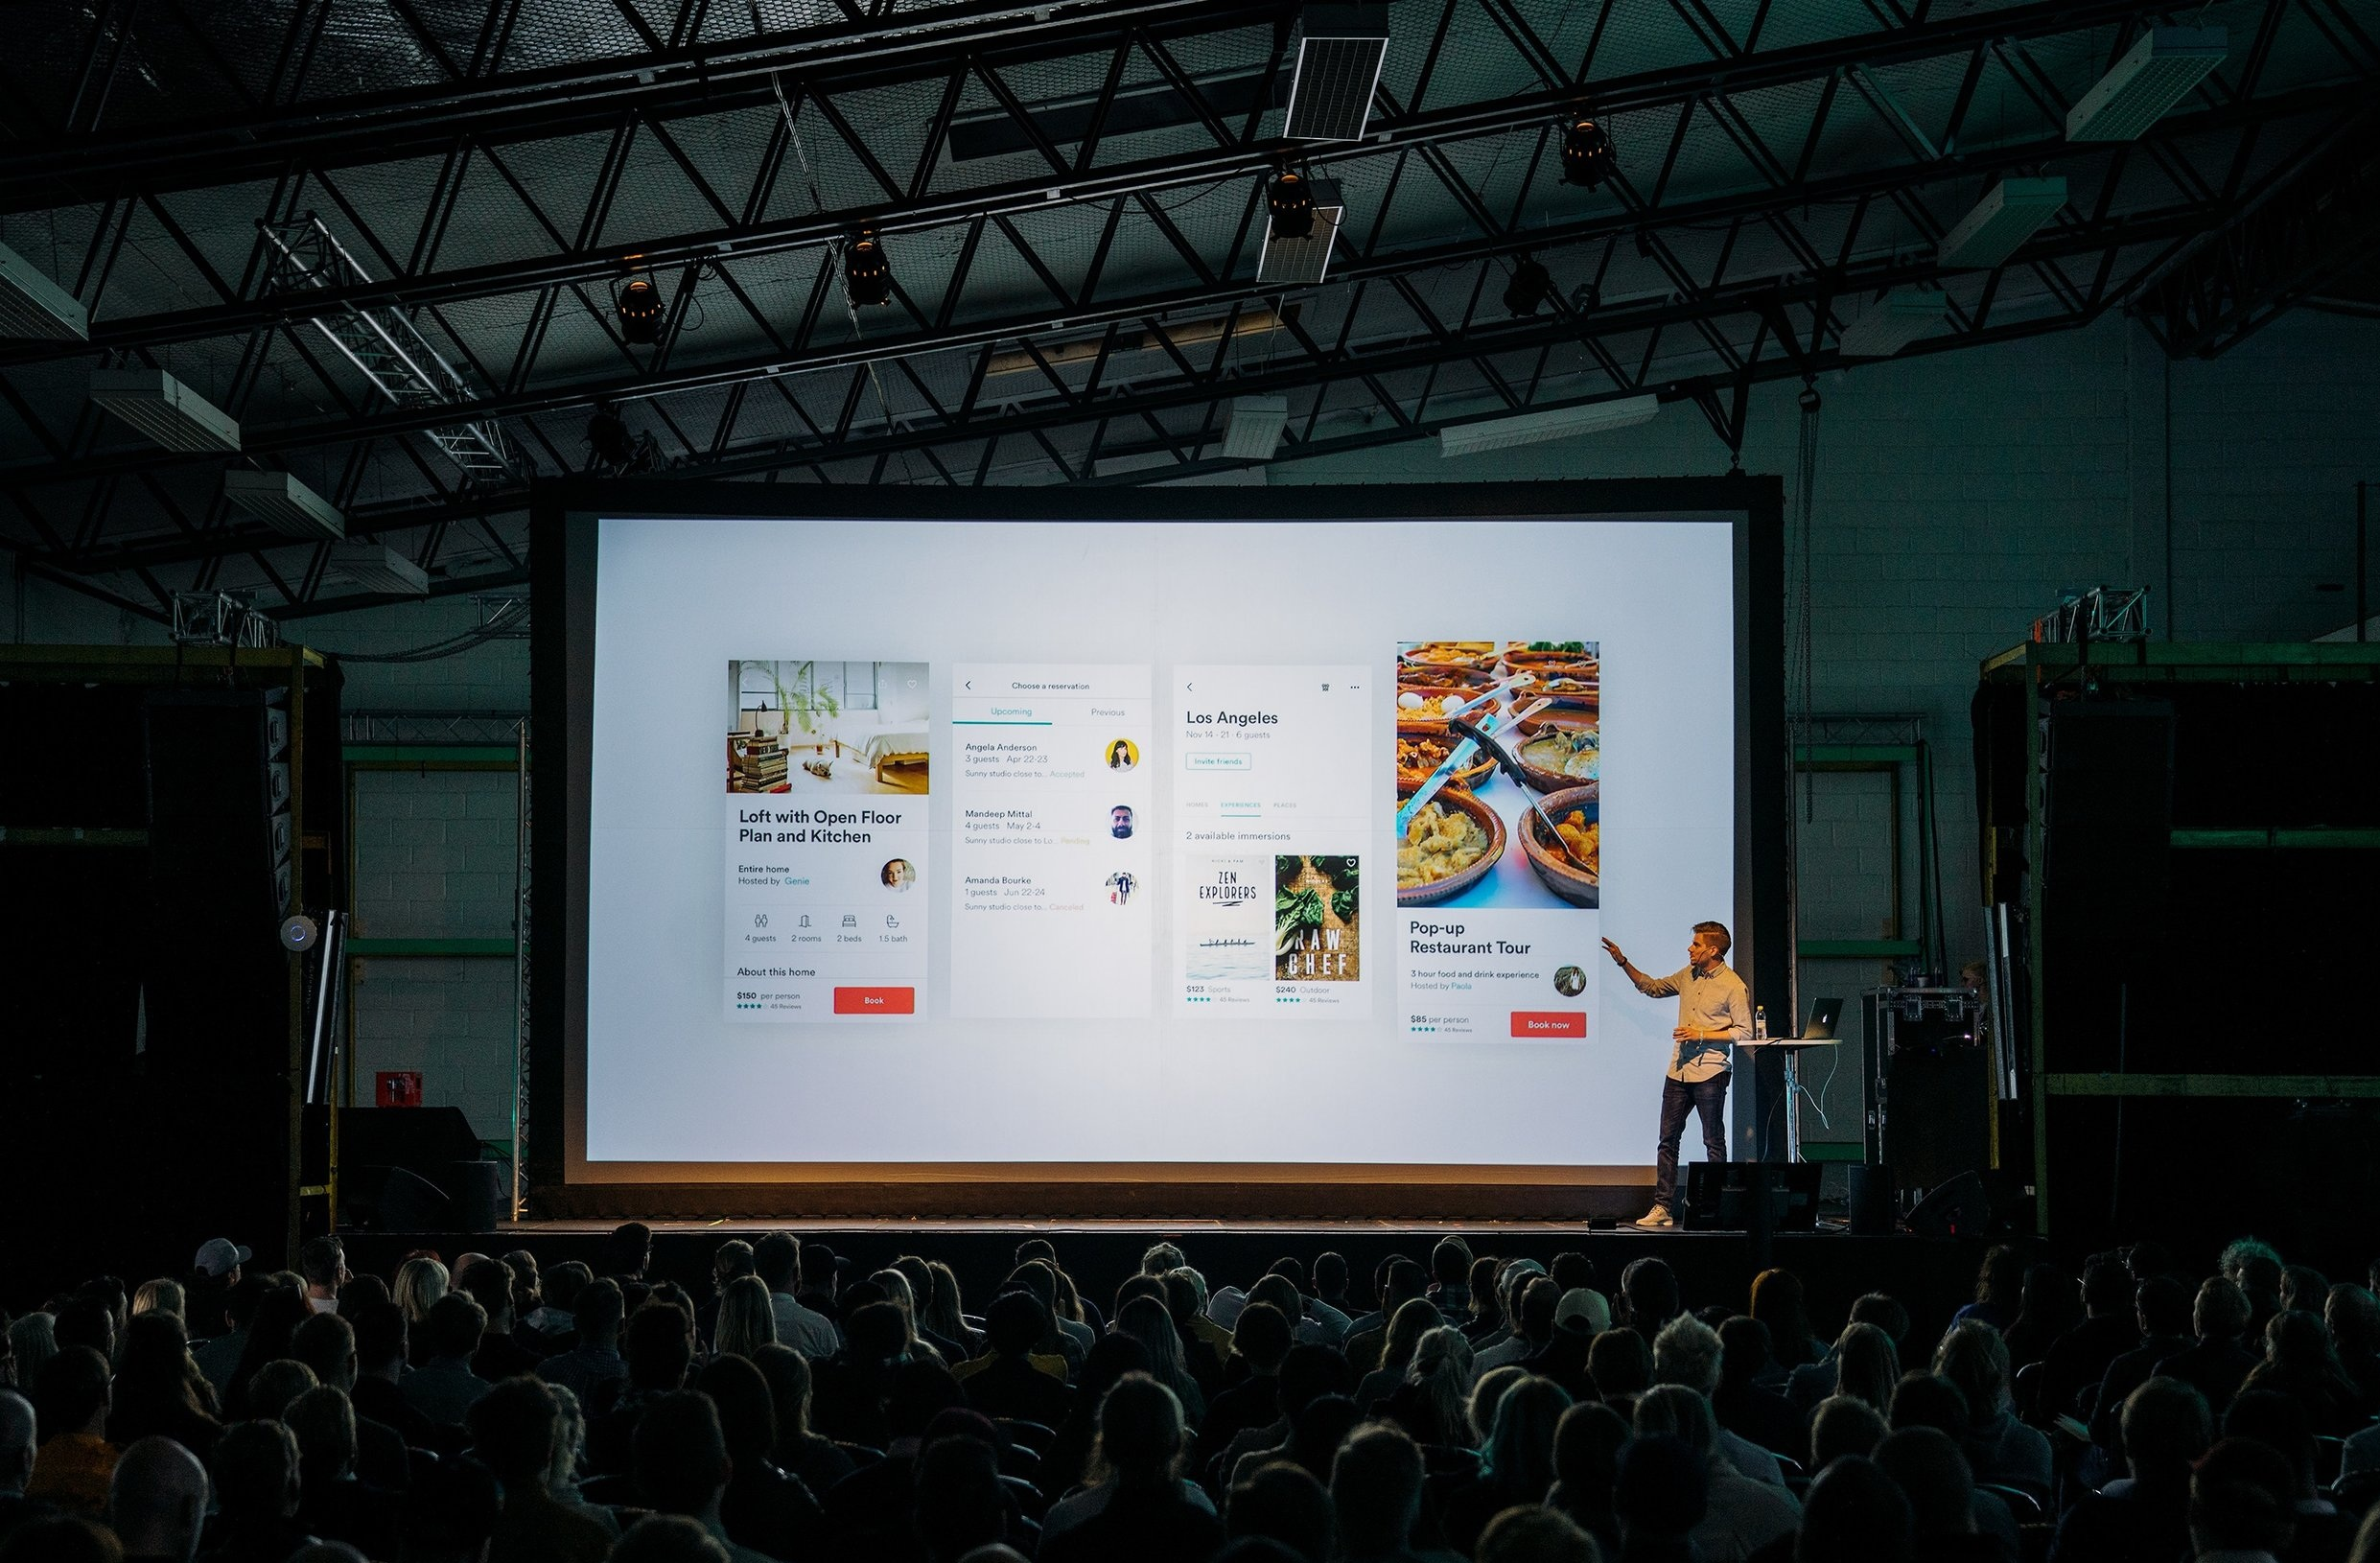 Firneo at Conferences - See pictures